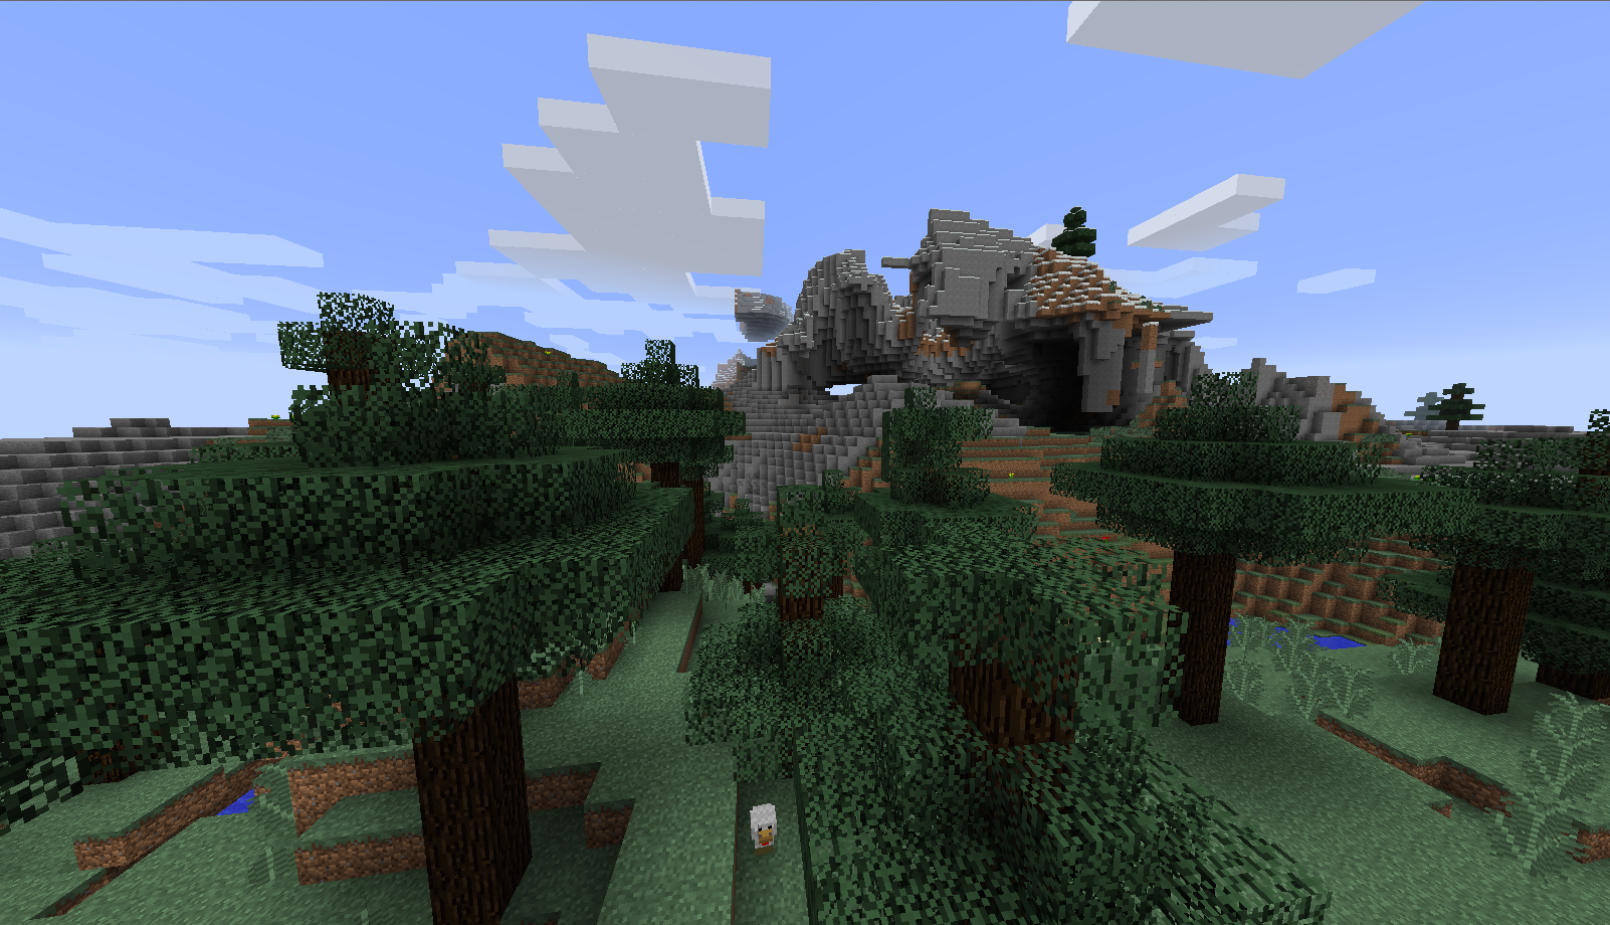 Minecraft hits PS4, PS Vita and Xbox One in August with various upgrade options